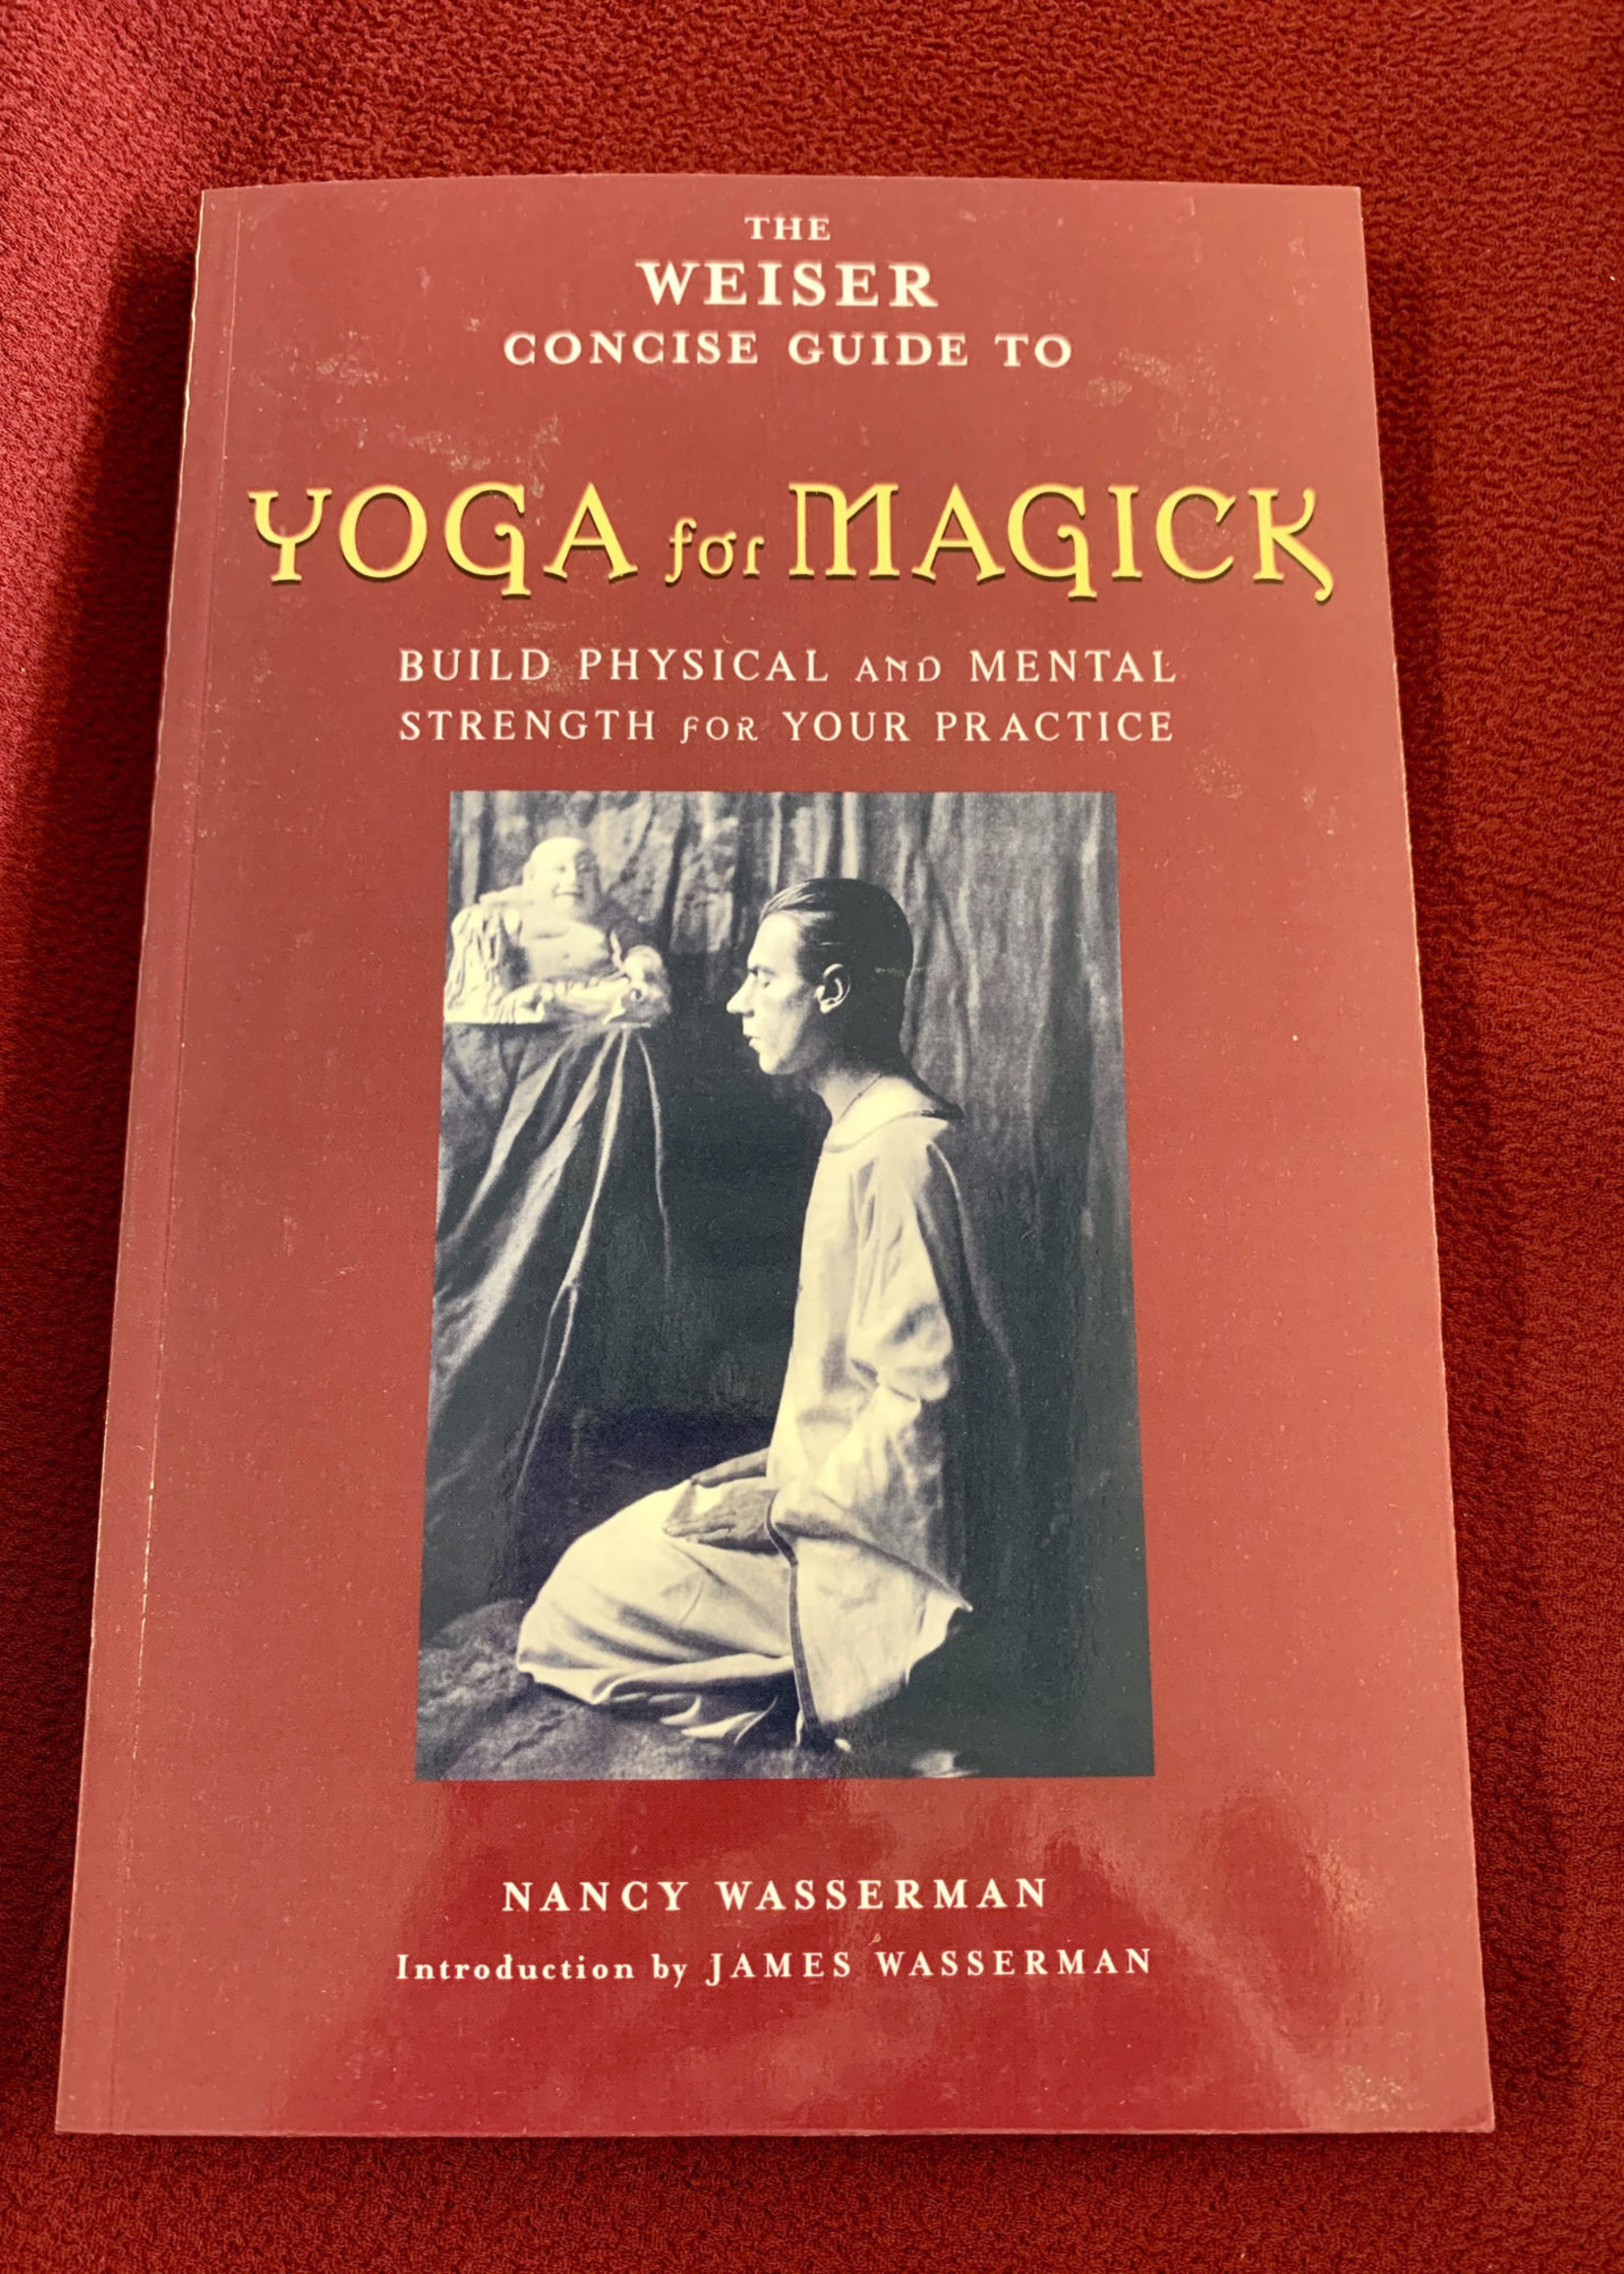 The Weiser Concise Guide to Yoga for Magick Builds Physical and Mental Strength for Your Practice -  Nancy Wasserman, Introduction by James Wasserman